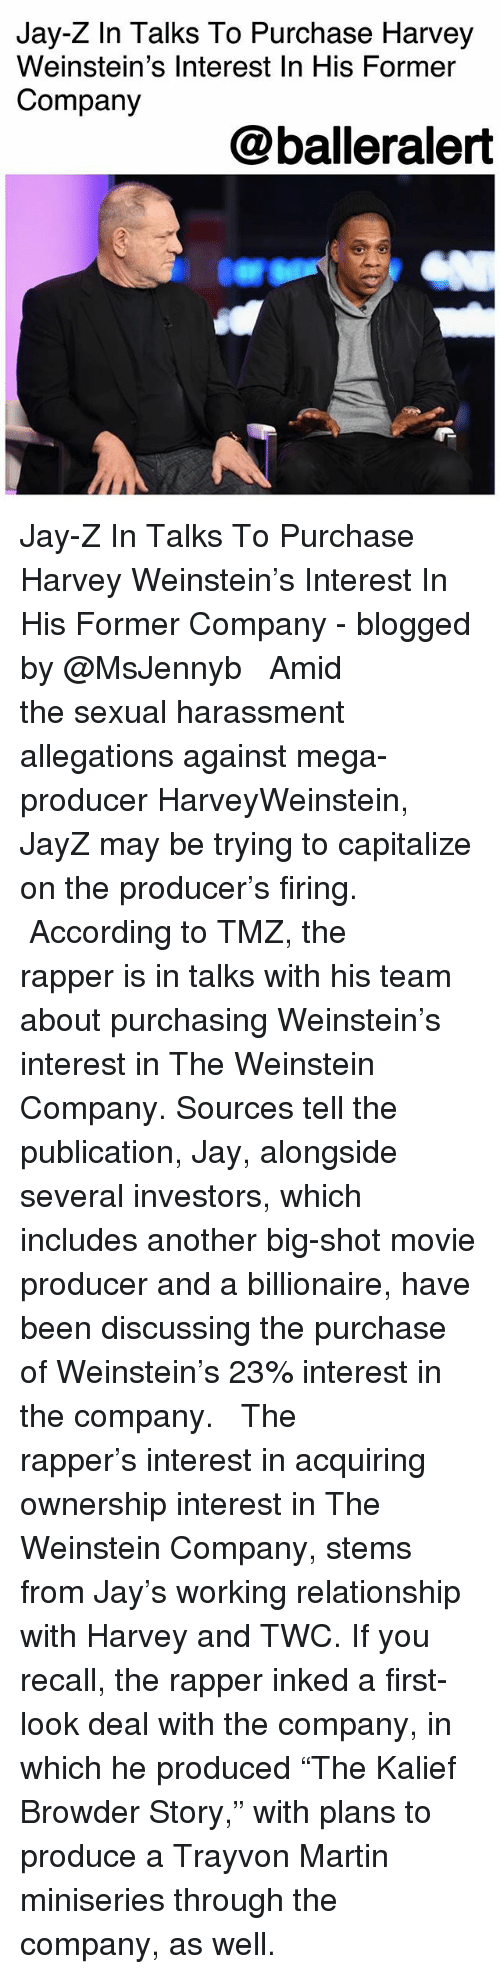 """Jay, Jay Z, and Martin: Jay-Z In Talks To Purchase Harvey  Weinstein's Interest In His Former  Company  @balleralert Jay-Z In Talks To Purchase Harvey Weinstein's Interest In His Former Company - blogged by @MsJennyb ⠀⠀⠀⠀⠀⠀⠀ ⠀⠀⠀⠀⠀⠀⠀ Amid the sexual harassment allegations against mega-producer HarveyWeinstein, JayZ may be trying to capitalize on the producer's firing. ⠀⠀⠀⠀⠀⠀⠀ ⠀⠀⠀⠀⠀⠀⠀ According to TMZ, the rapper is in talks with his team about purchasing Weinstein's interest in The Weinstein Company. Sources tell the publication, Jay, alongside several investors, which includes another big-shot movie producer and a billionaire, have been discussing the purchase of Weinstein's 23% interest in the company. ⠀⠀⠀⠀⠀⠀⠀ ⠀⠀⠀⠀⠀⠀⠀ The rapper's interest in acquiring ownership interest in The Weinstein Company, stems from Jay's working relationship with Harvey and TWC. If you recall, the rapper inked a first-look deal with the company, in which he produced """"The Kalief Browder Story,"""" with plans to produce a Trayvon Martin miniseries through the company, as well."""